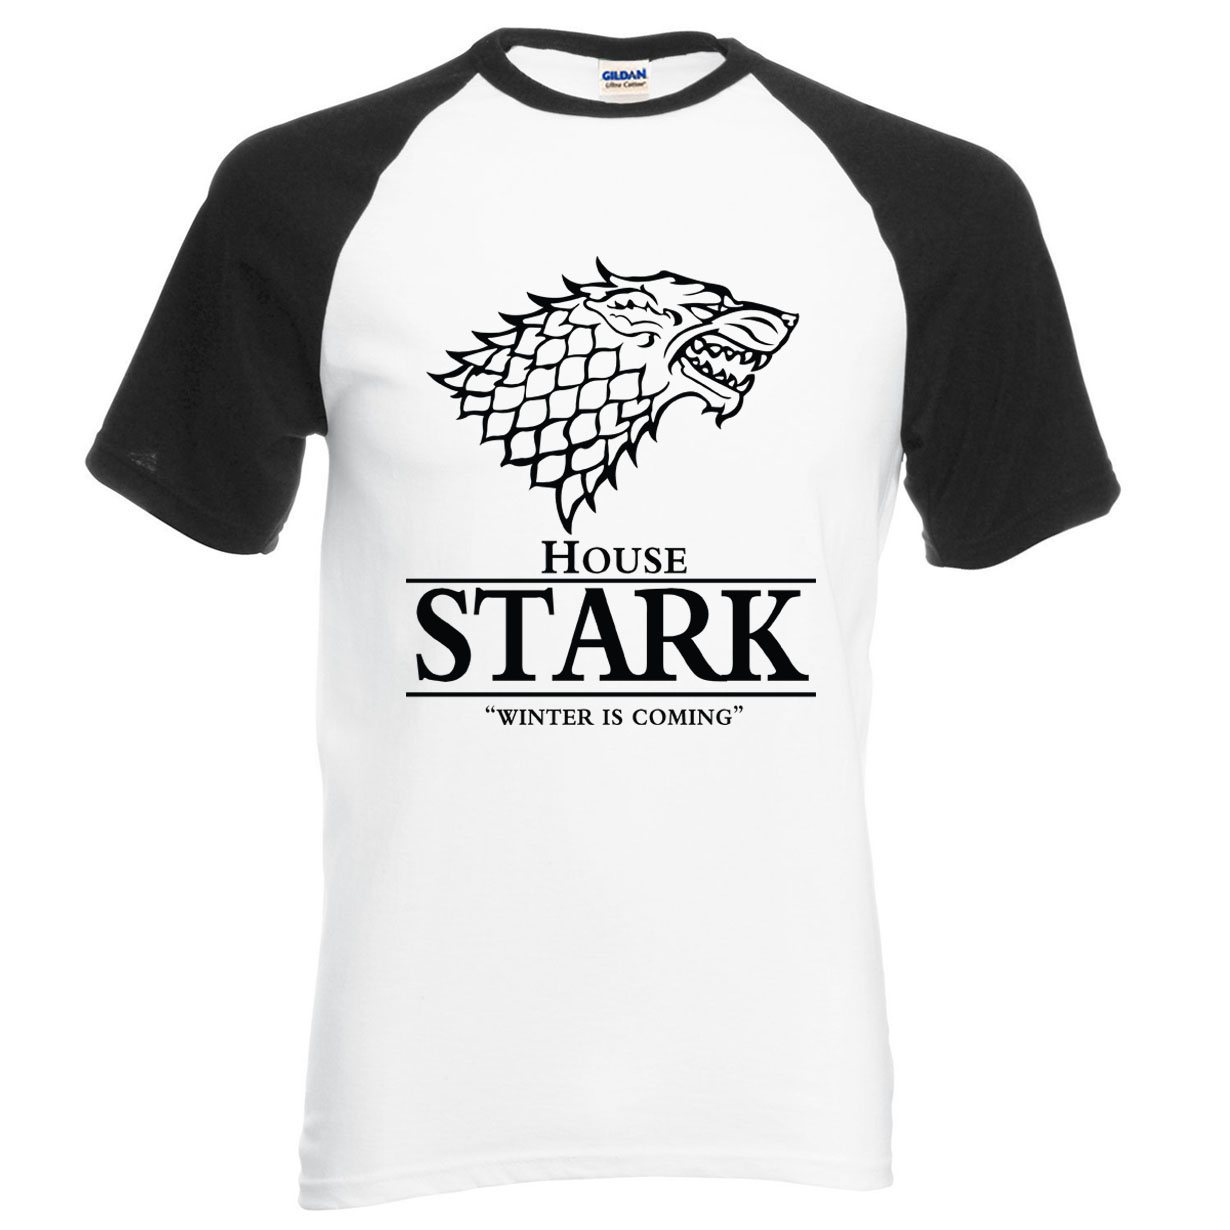 HAMPSON LANQE Game of Thrones t shirt 100% cotton top tees